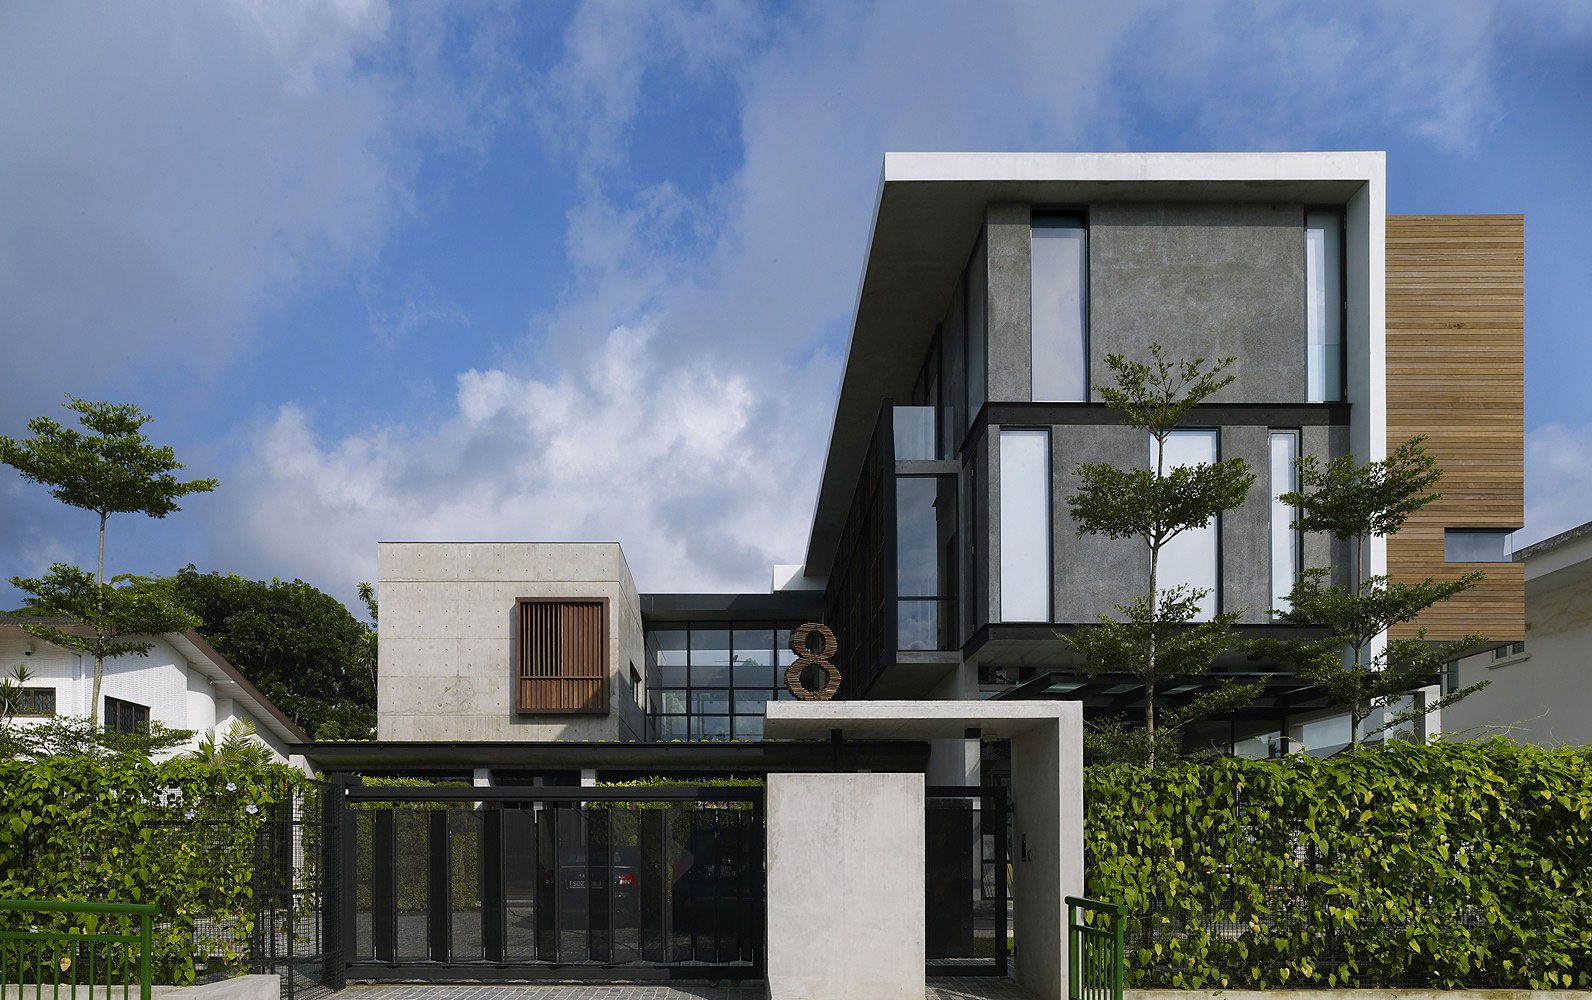 Contemporary Apartment House By Formwerkz Architects, Singapore